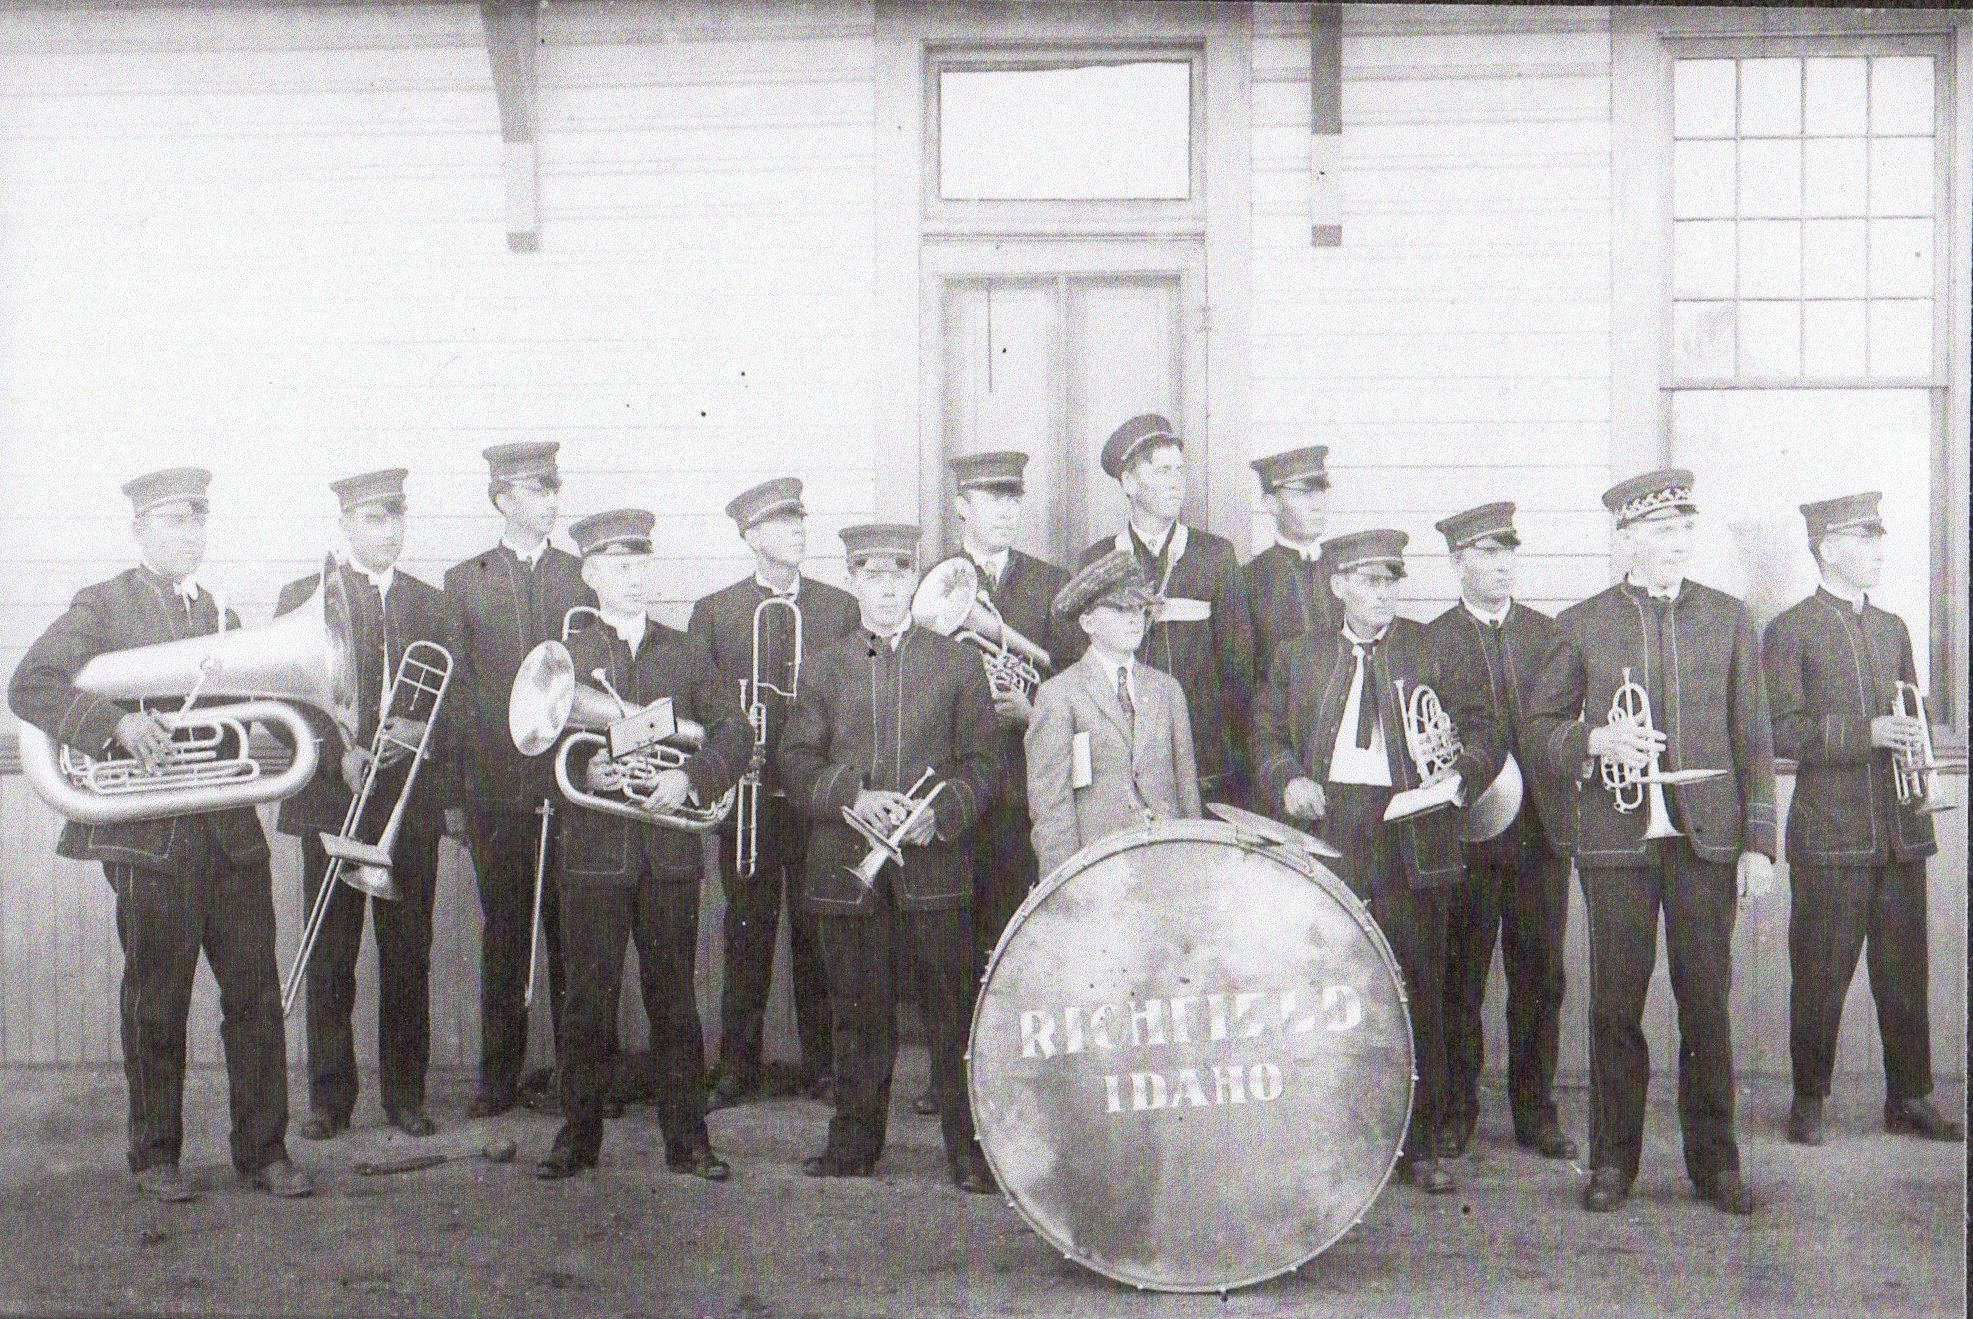 Historic Richfield, Idaho Music Band